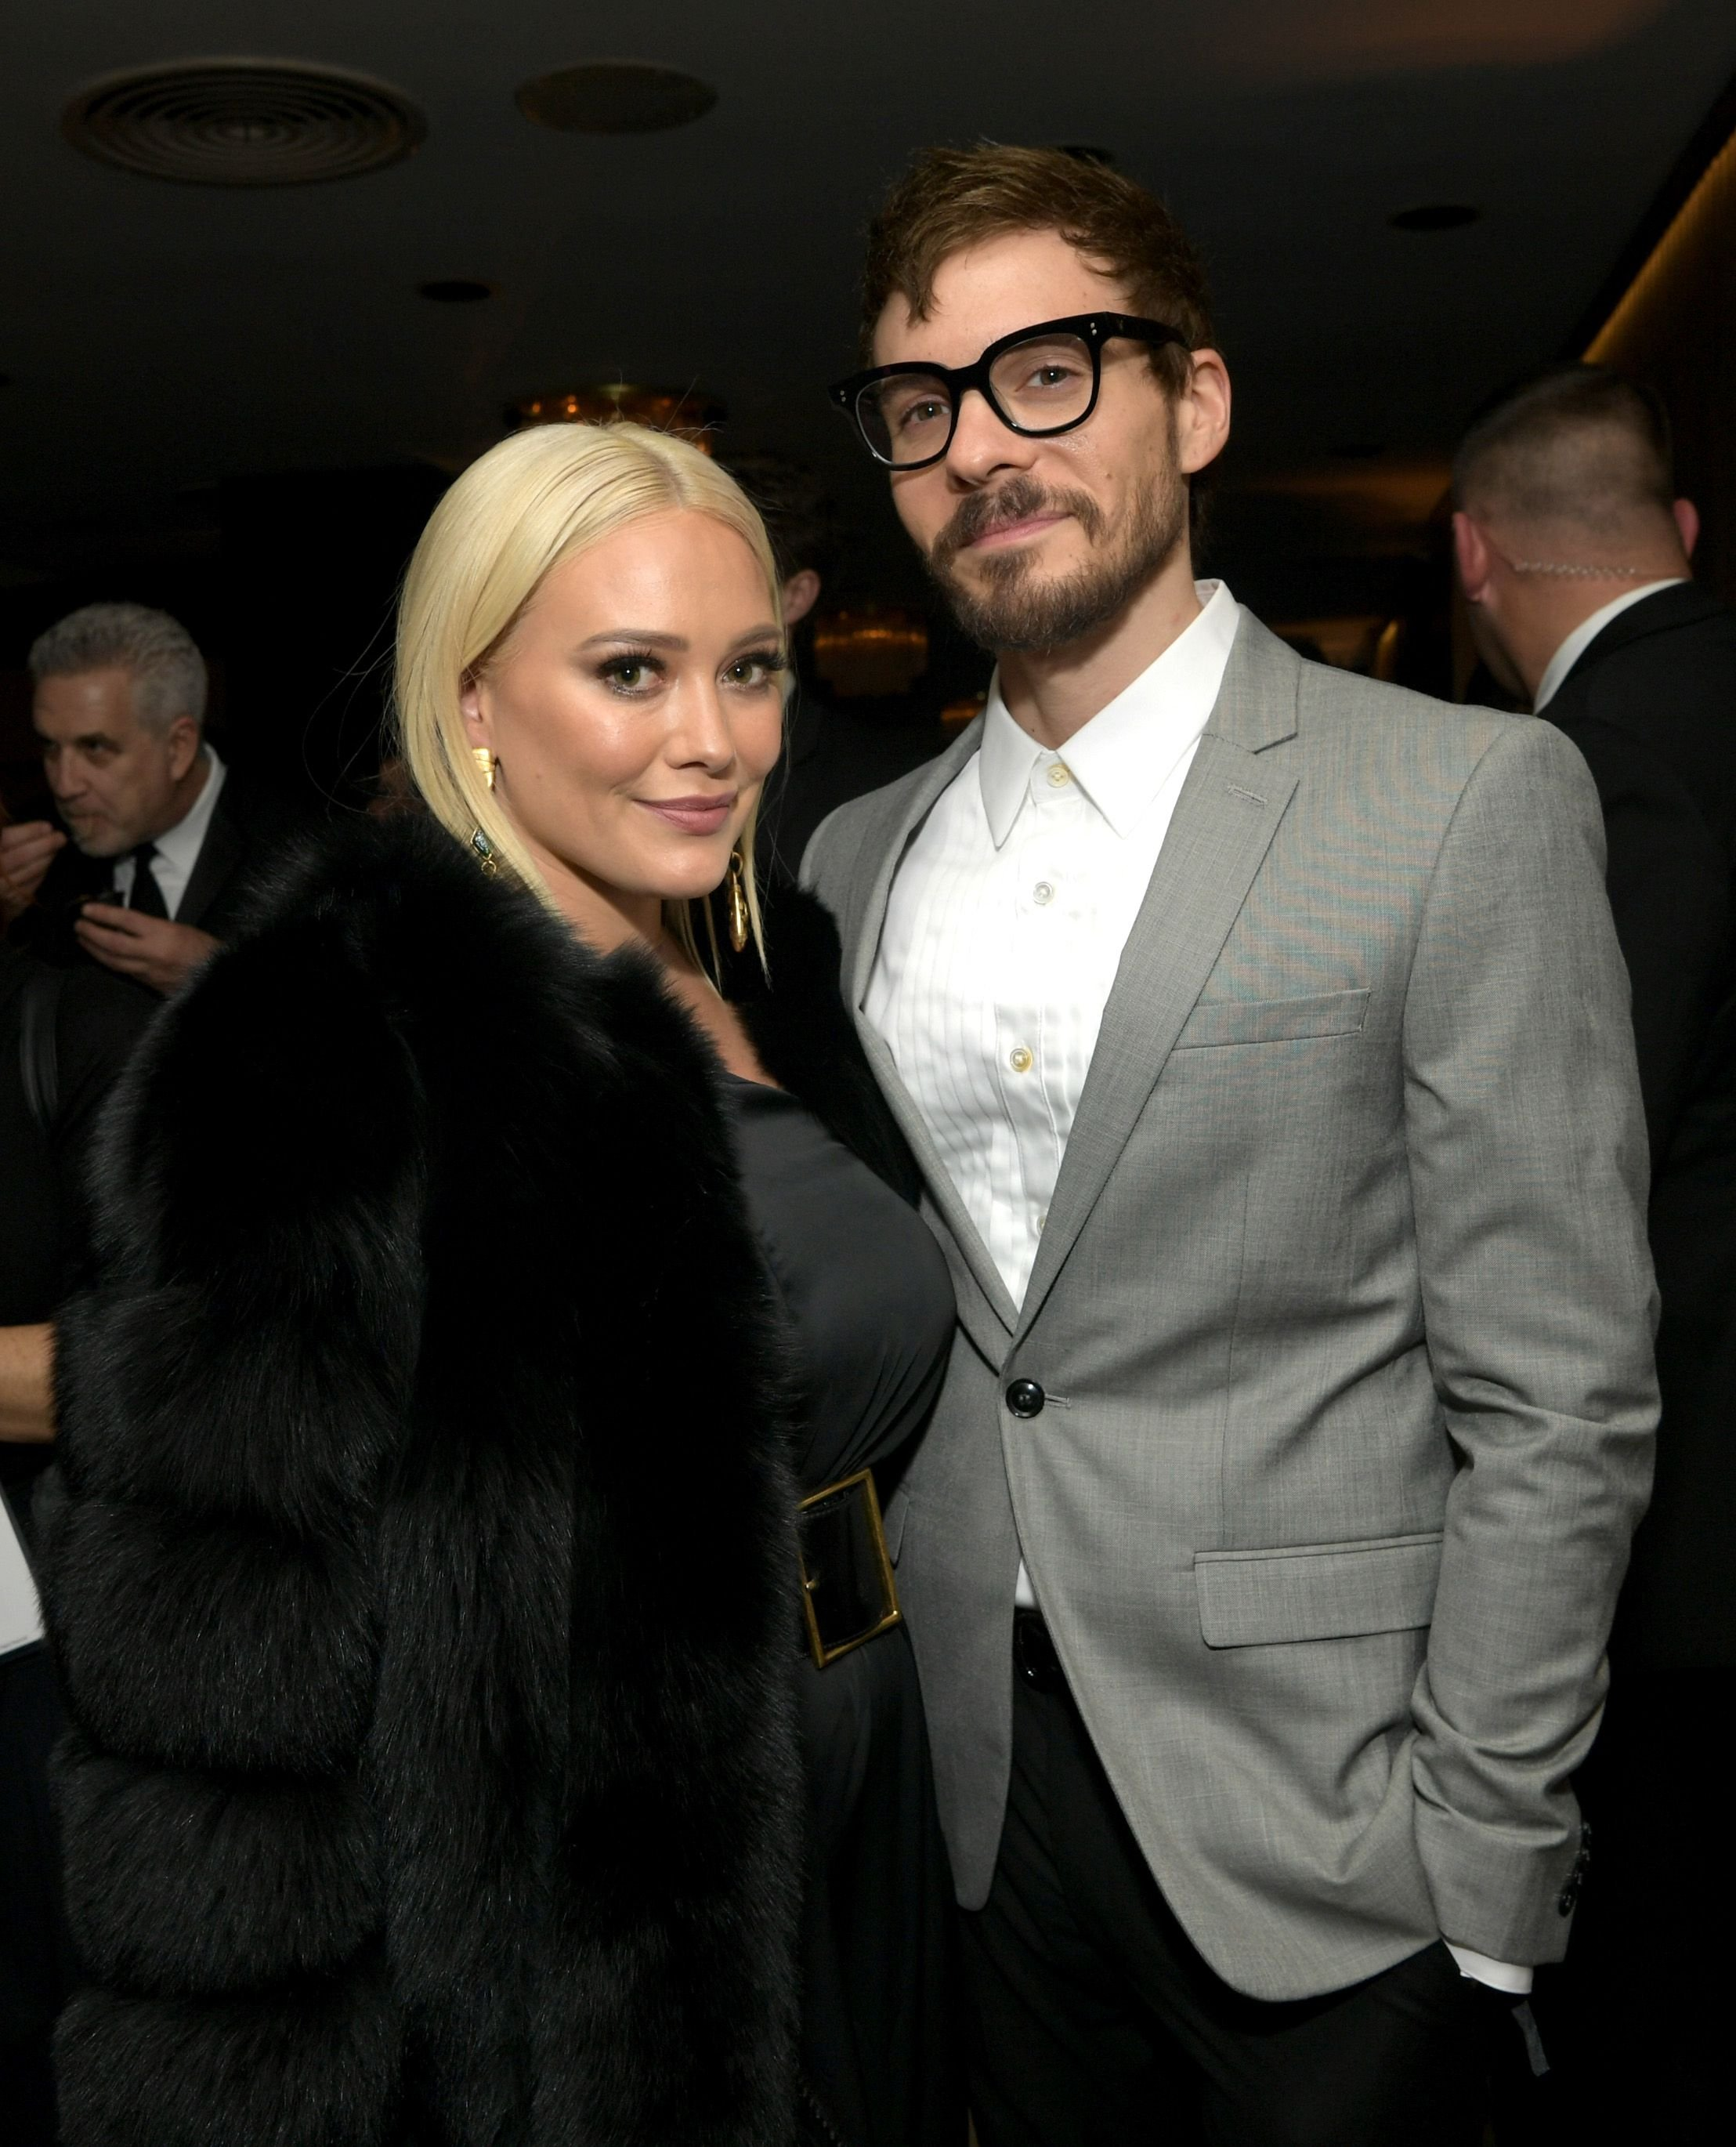 Hilary Duff and Matthew Koma at the Amazon Prime Video's Golden Globe Awards After Party at The Beverly Hilton Hotel in Beverly Hills, California | Photo: Emma McIntyre/Getty Images